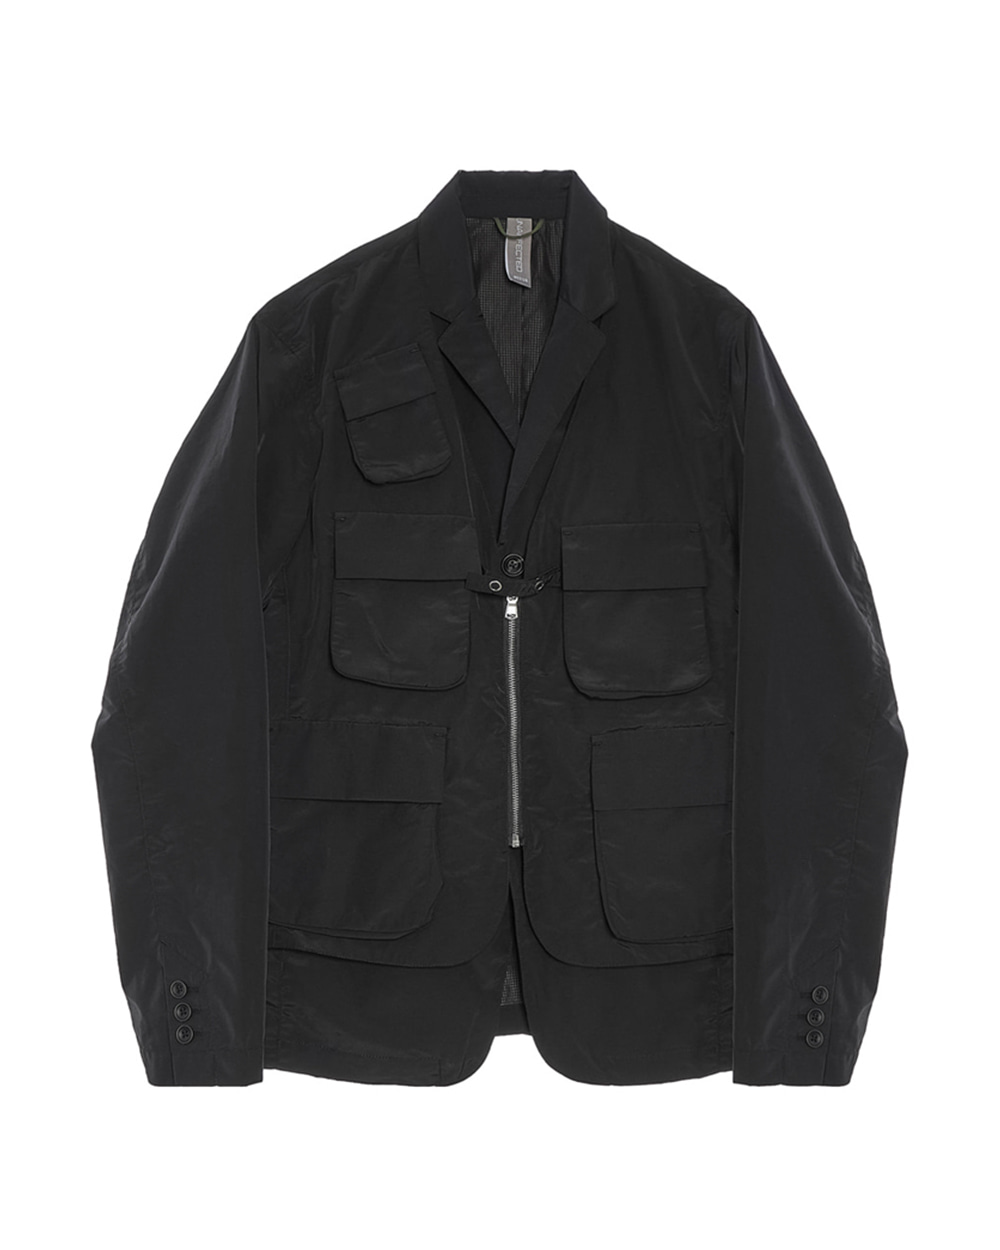 언어펙티드 LAYERED JACKET (Black)